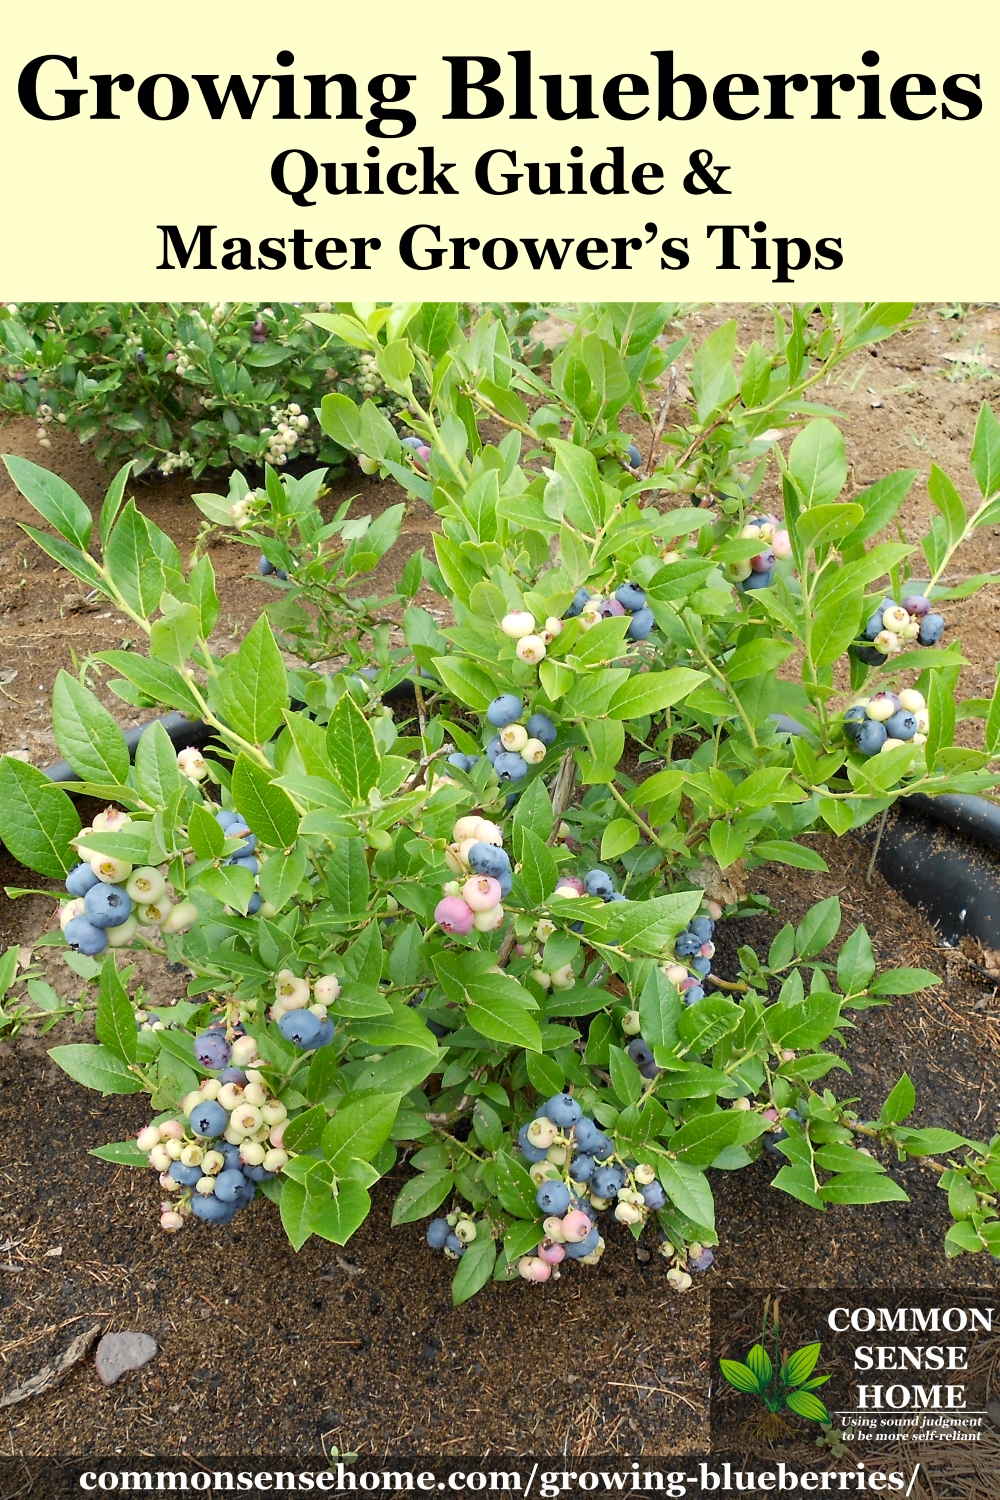 Growing Blueberries - Quick Guide and Master Grower's Tips